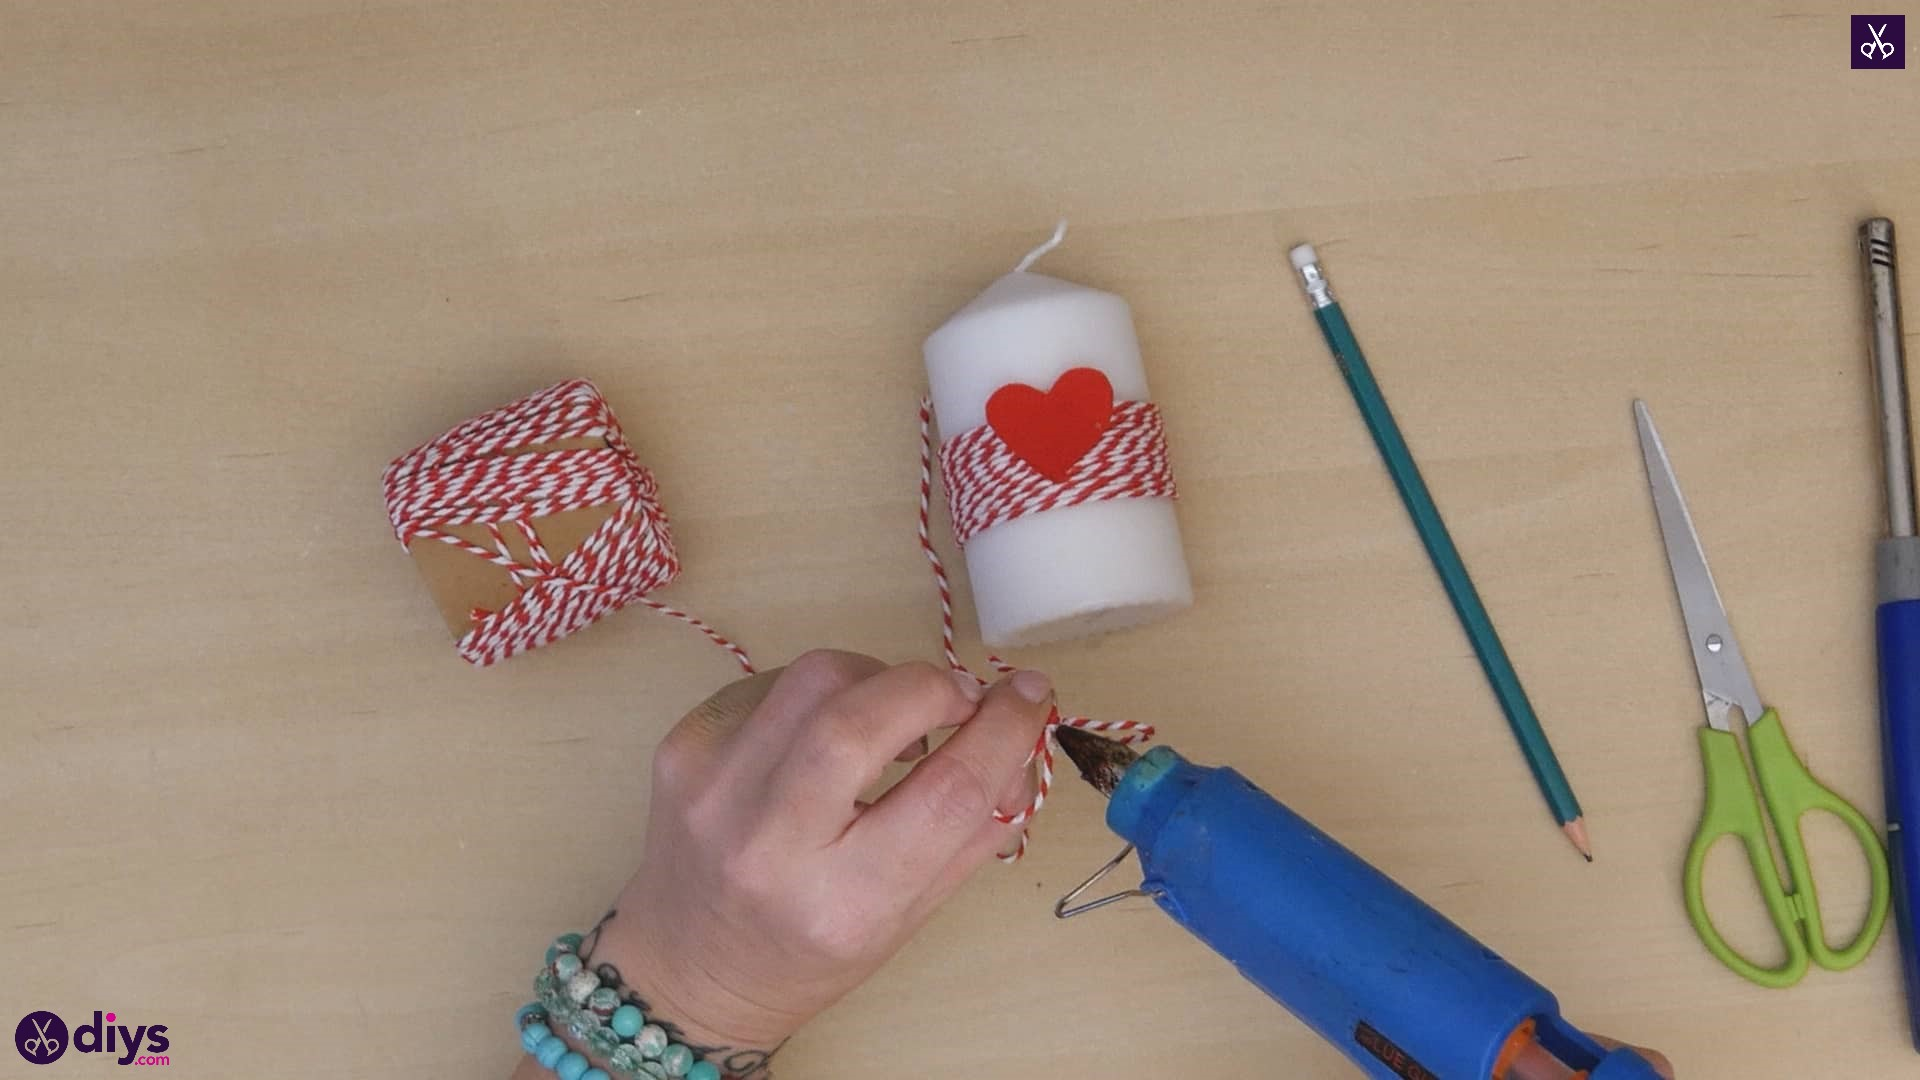 Diy valentine's candle red paper step 5b